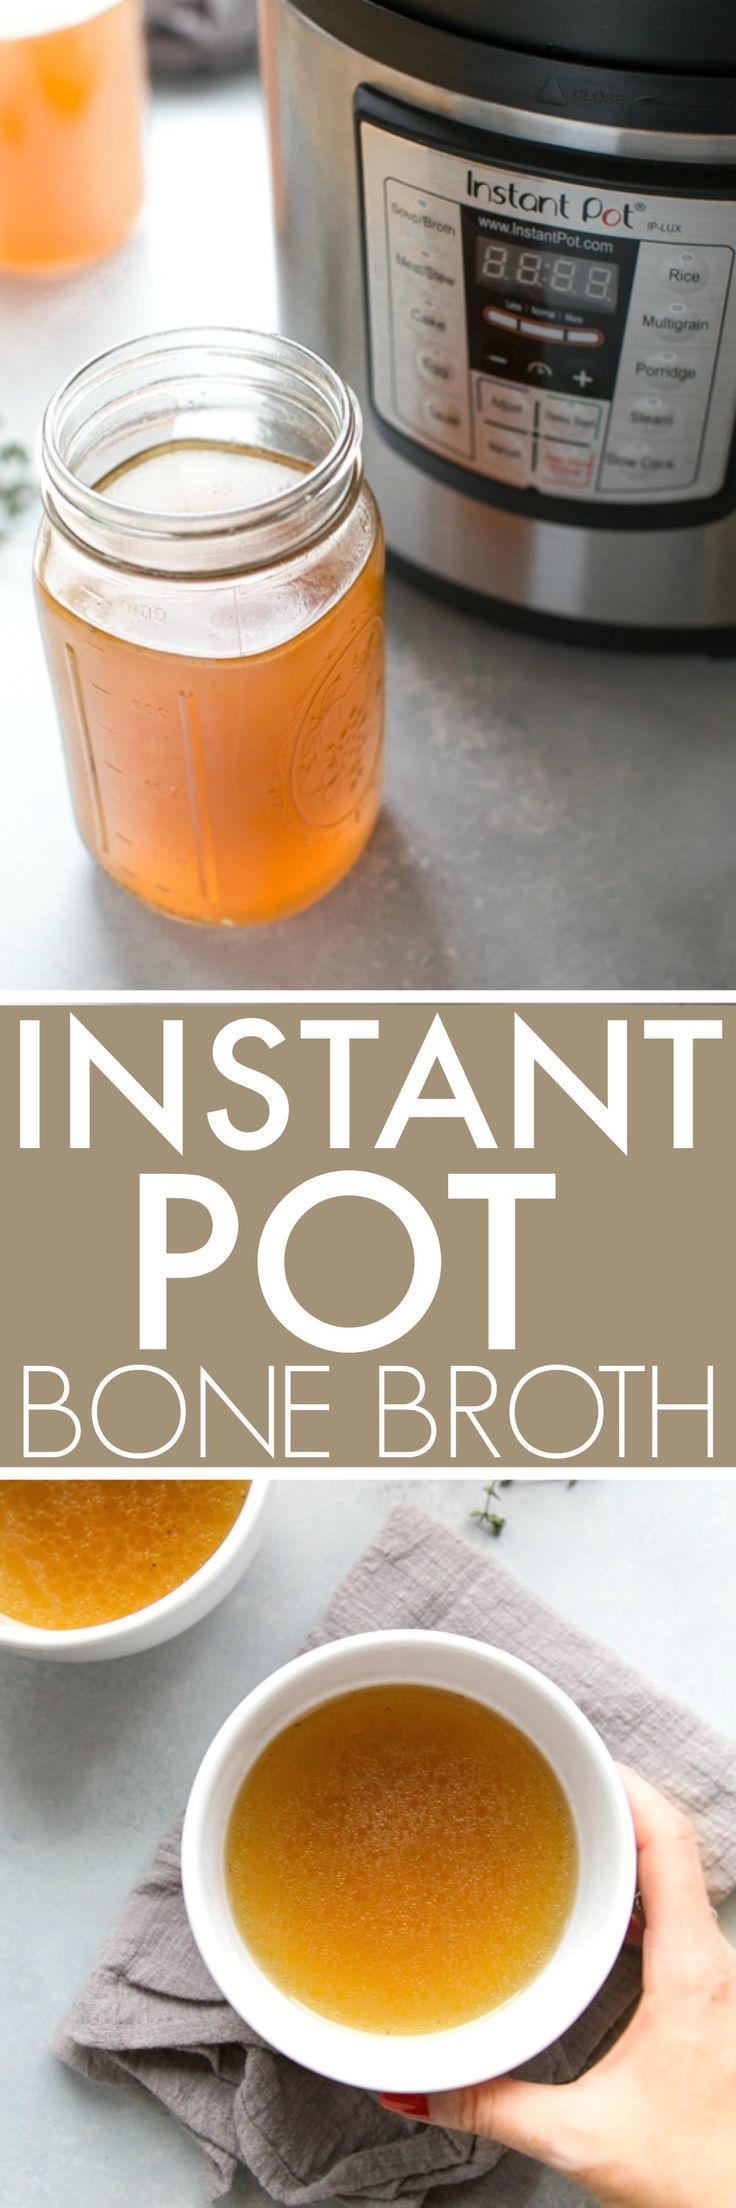 "Instant Pot ""Better Than Botox"" Bone Broth is full of natural collagen! Make chicken, pork or beef stock using kitchen scraps and your electric pressure cooker. #bonebroth #instantpot #instantpotbonebroth #chickenstock #chickenbroth #homemadebroth  via @platingspairing"